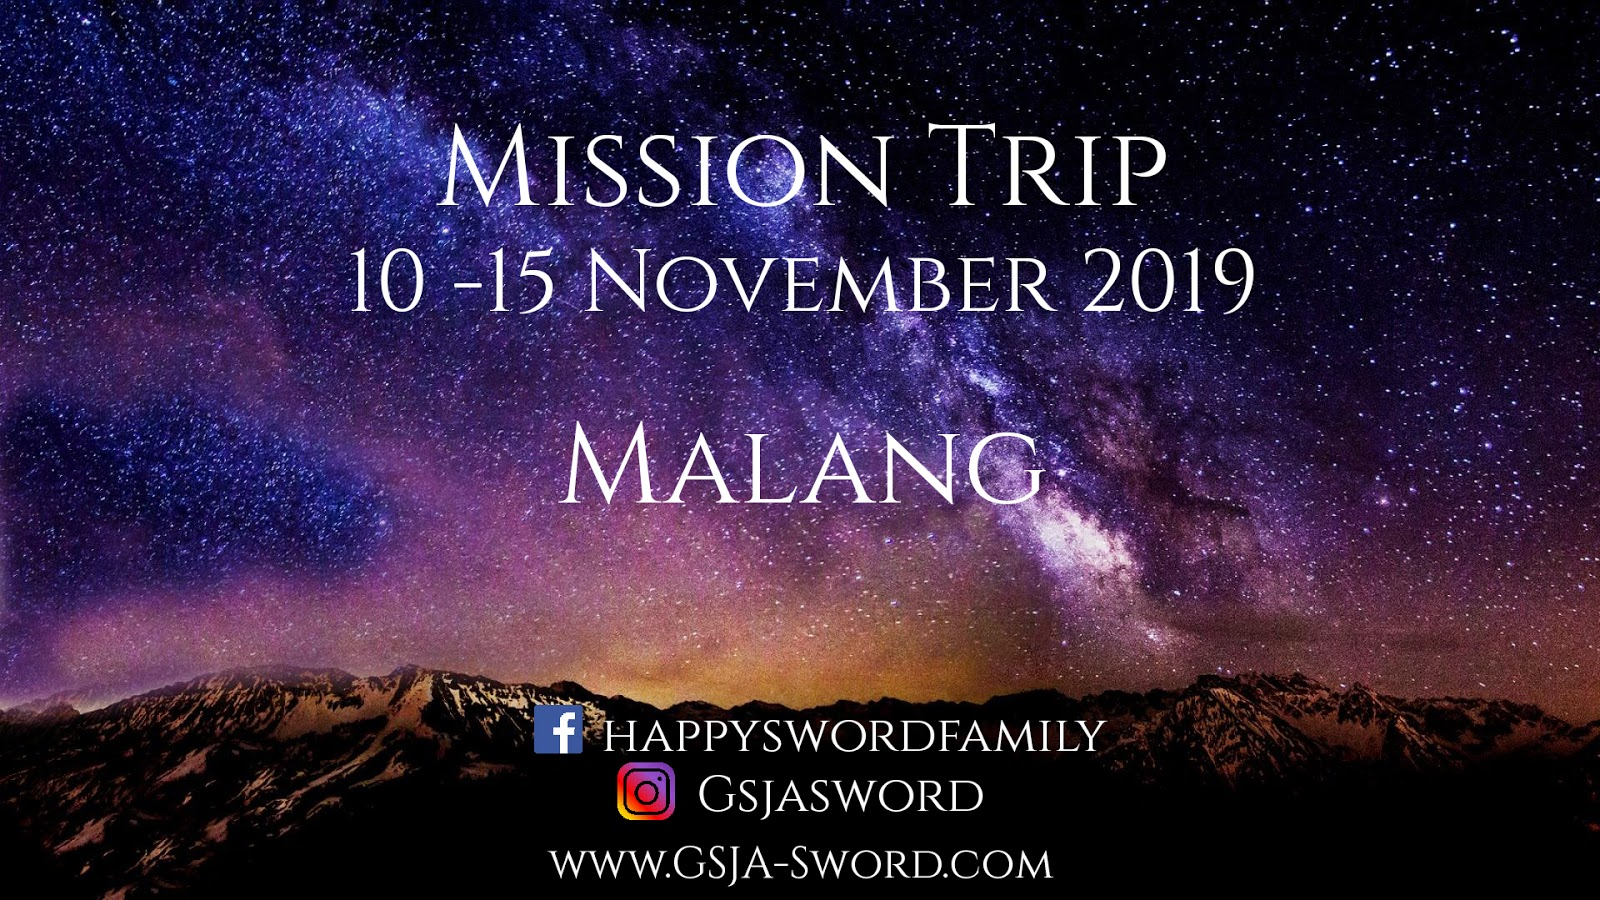 Mission Trip GSJA Sword 10-15 November 2019 di Malang